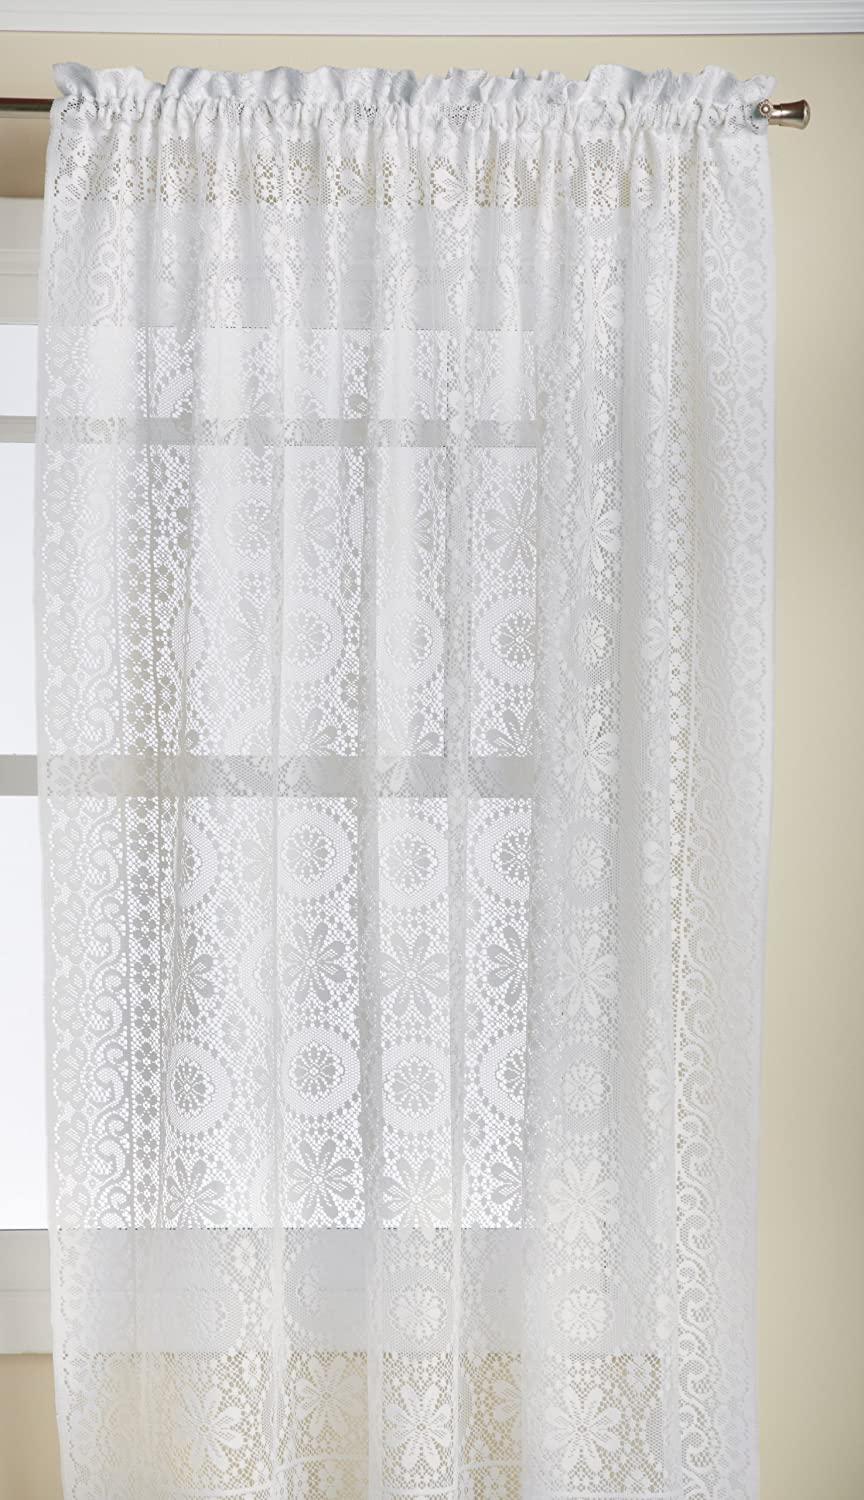 LORRAINE HOME FASHIONS Hopewell Lace Window Curtain Panel, 58-Inch by 84-Inch, White